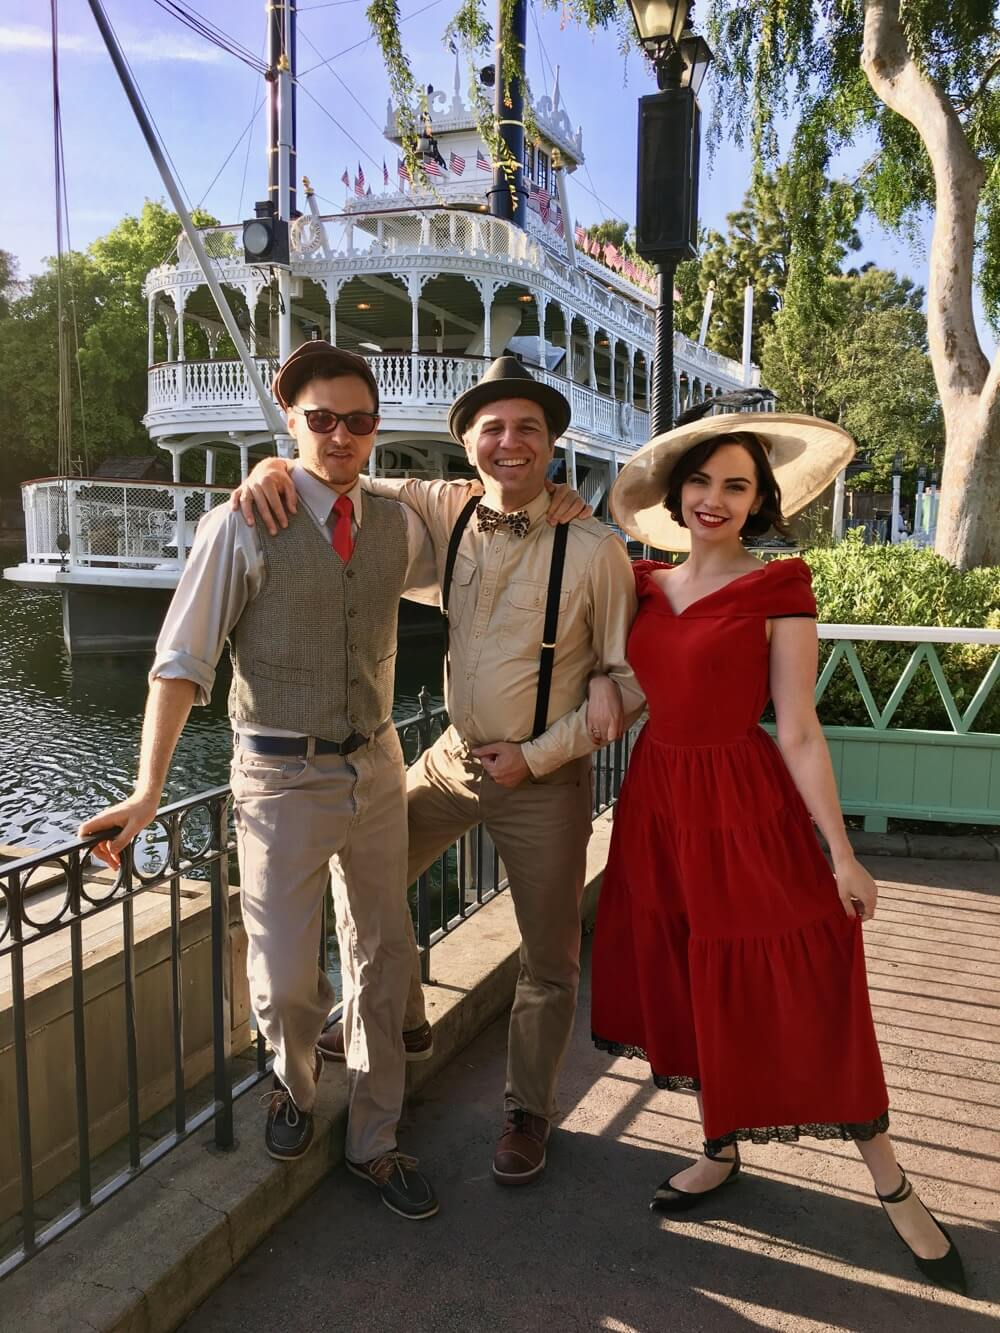 Guardians of the Galaxy—Mission: BREAKOUT - Dapper Day - Frontierland